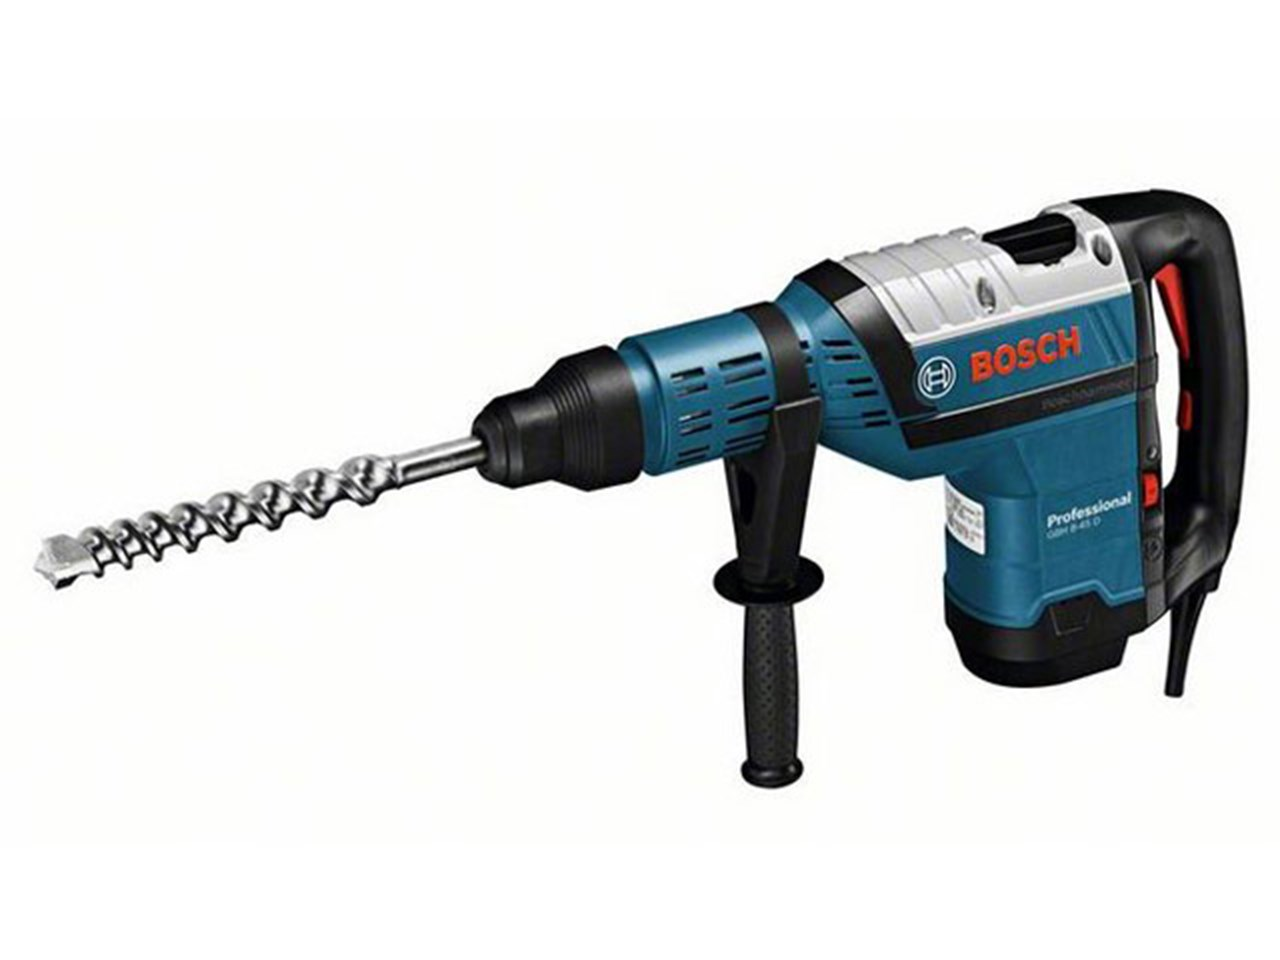 GBH8-45 D Professional SDS-max Rotary Hammer Drill - 110v